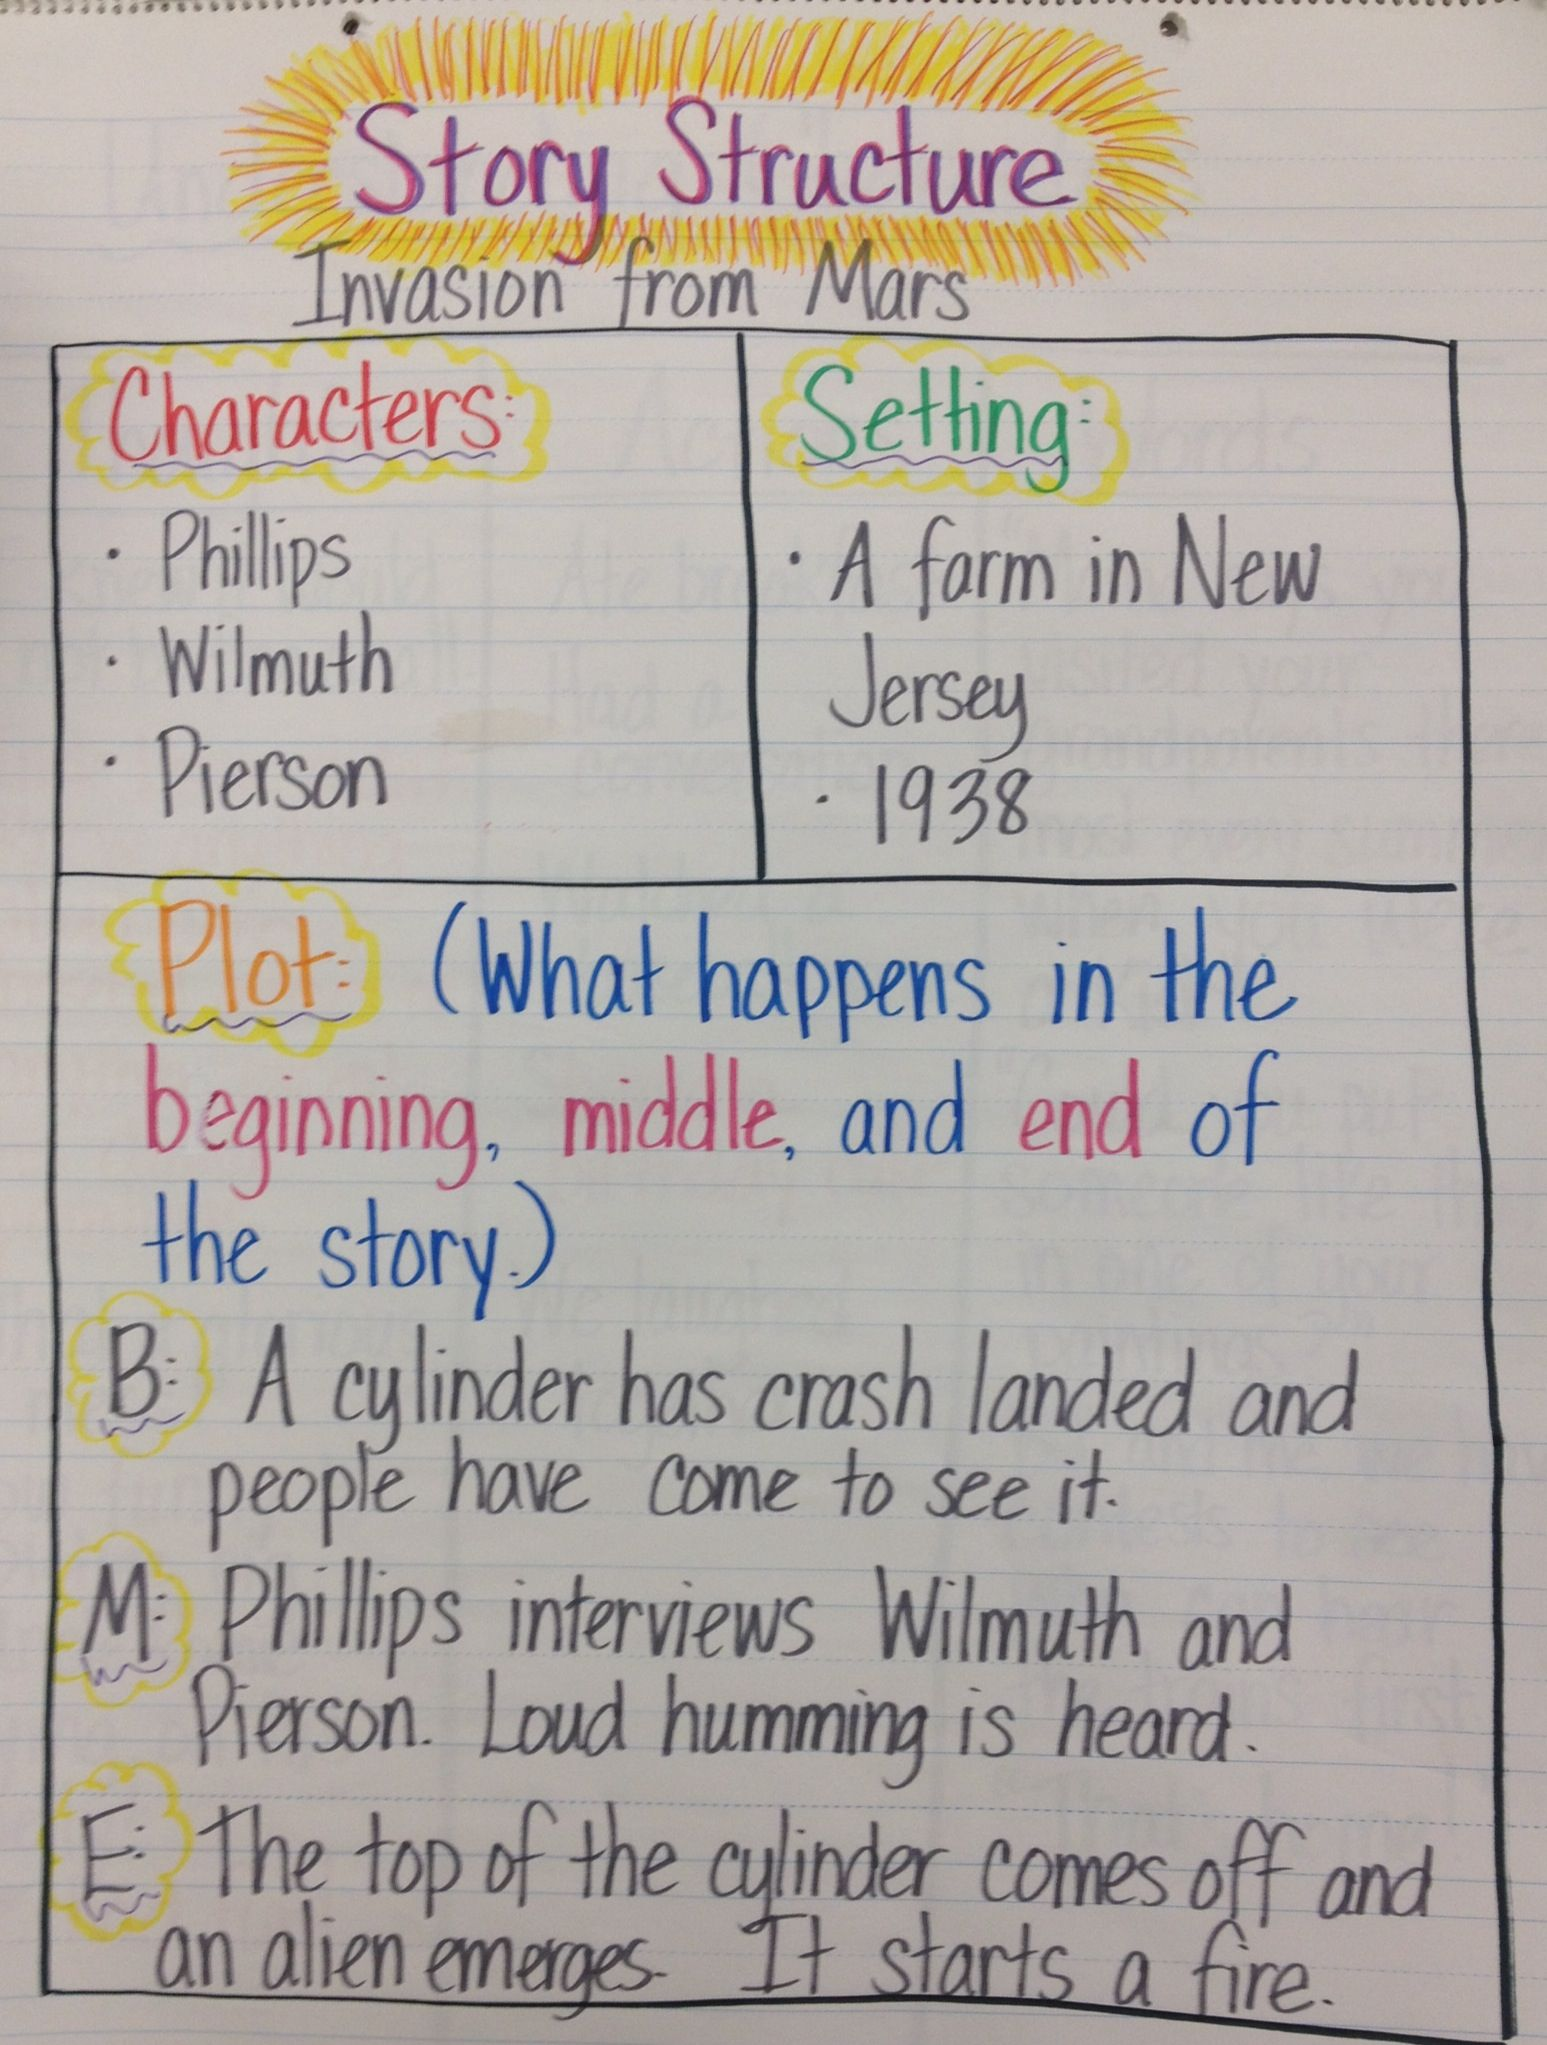 medium resolution of Pin by Deb Walsh on Teaching - anchor charts/posters Reading   Story  structure anchor chart